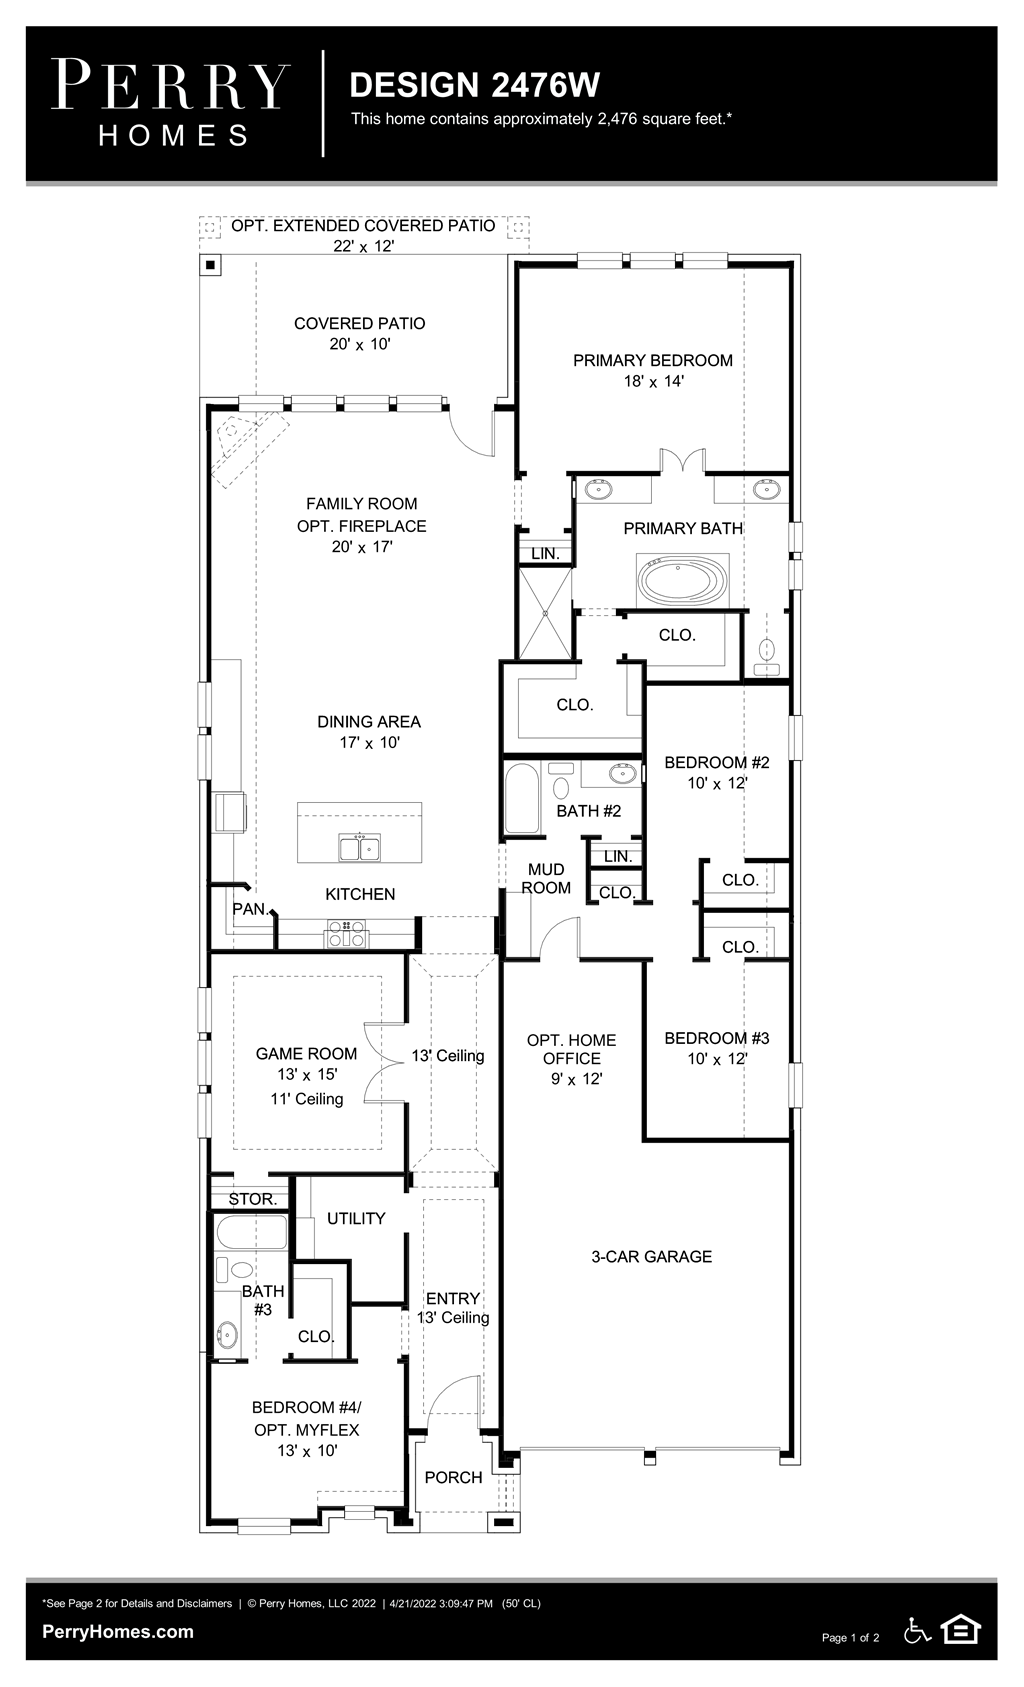 Floor Plan for 2476W